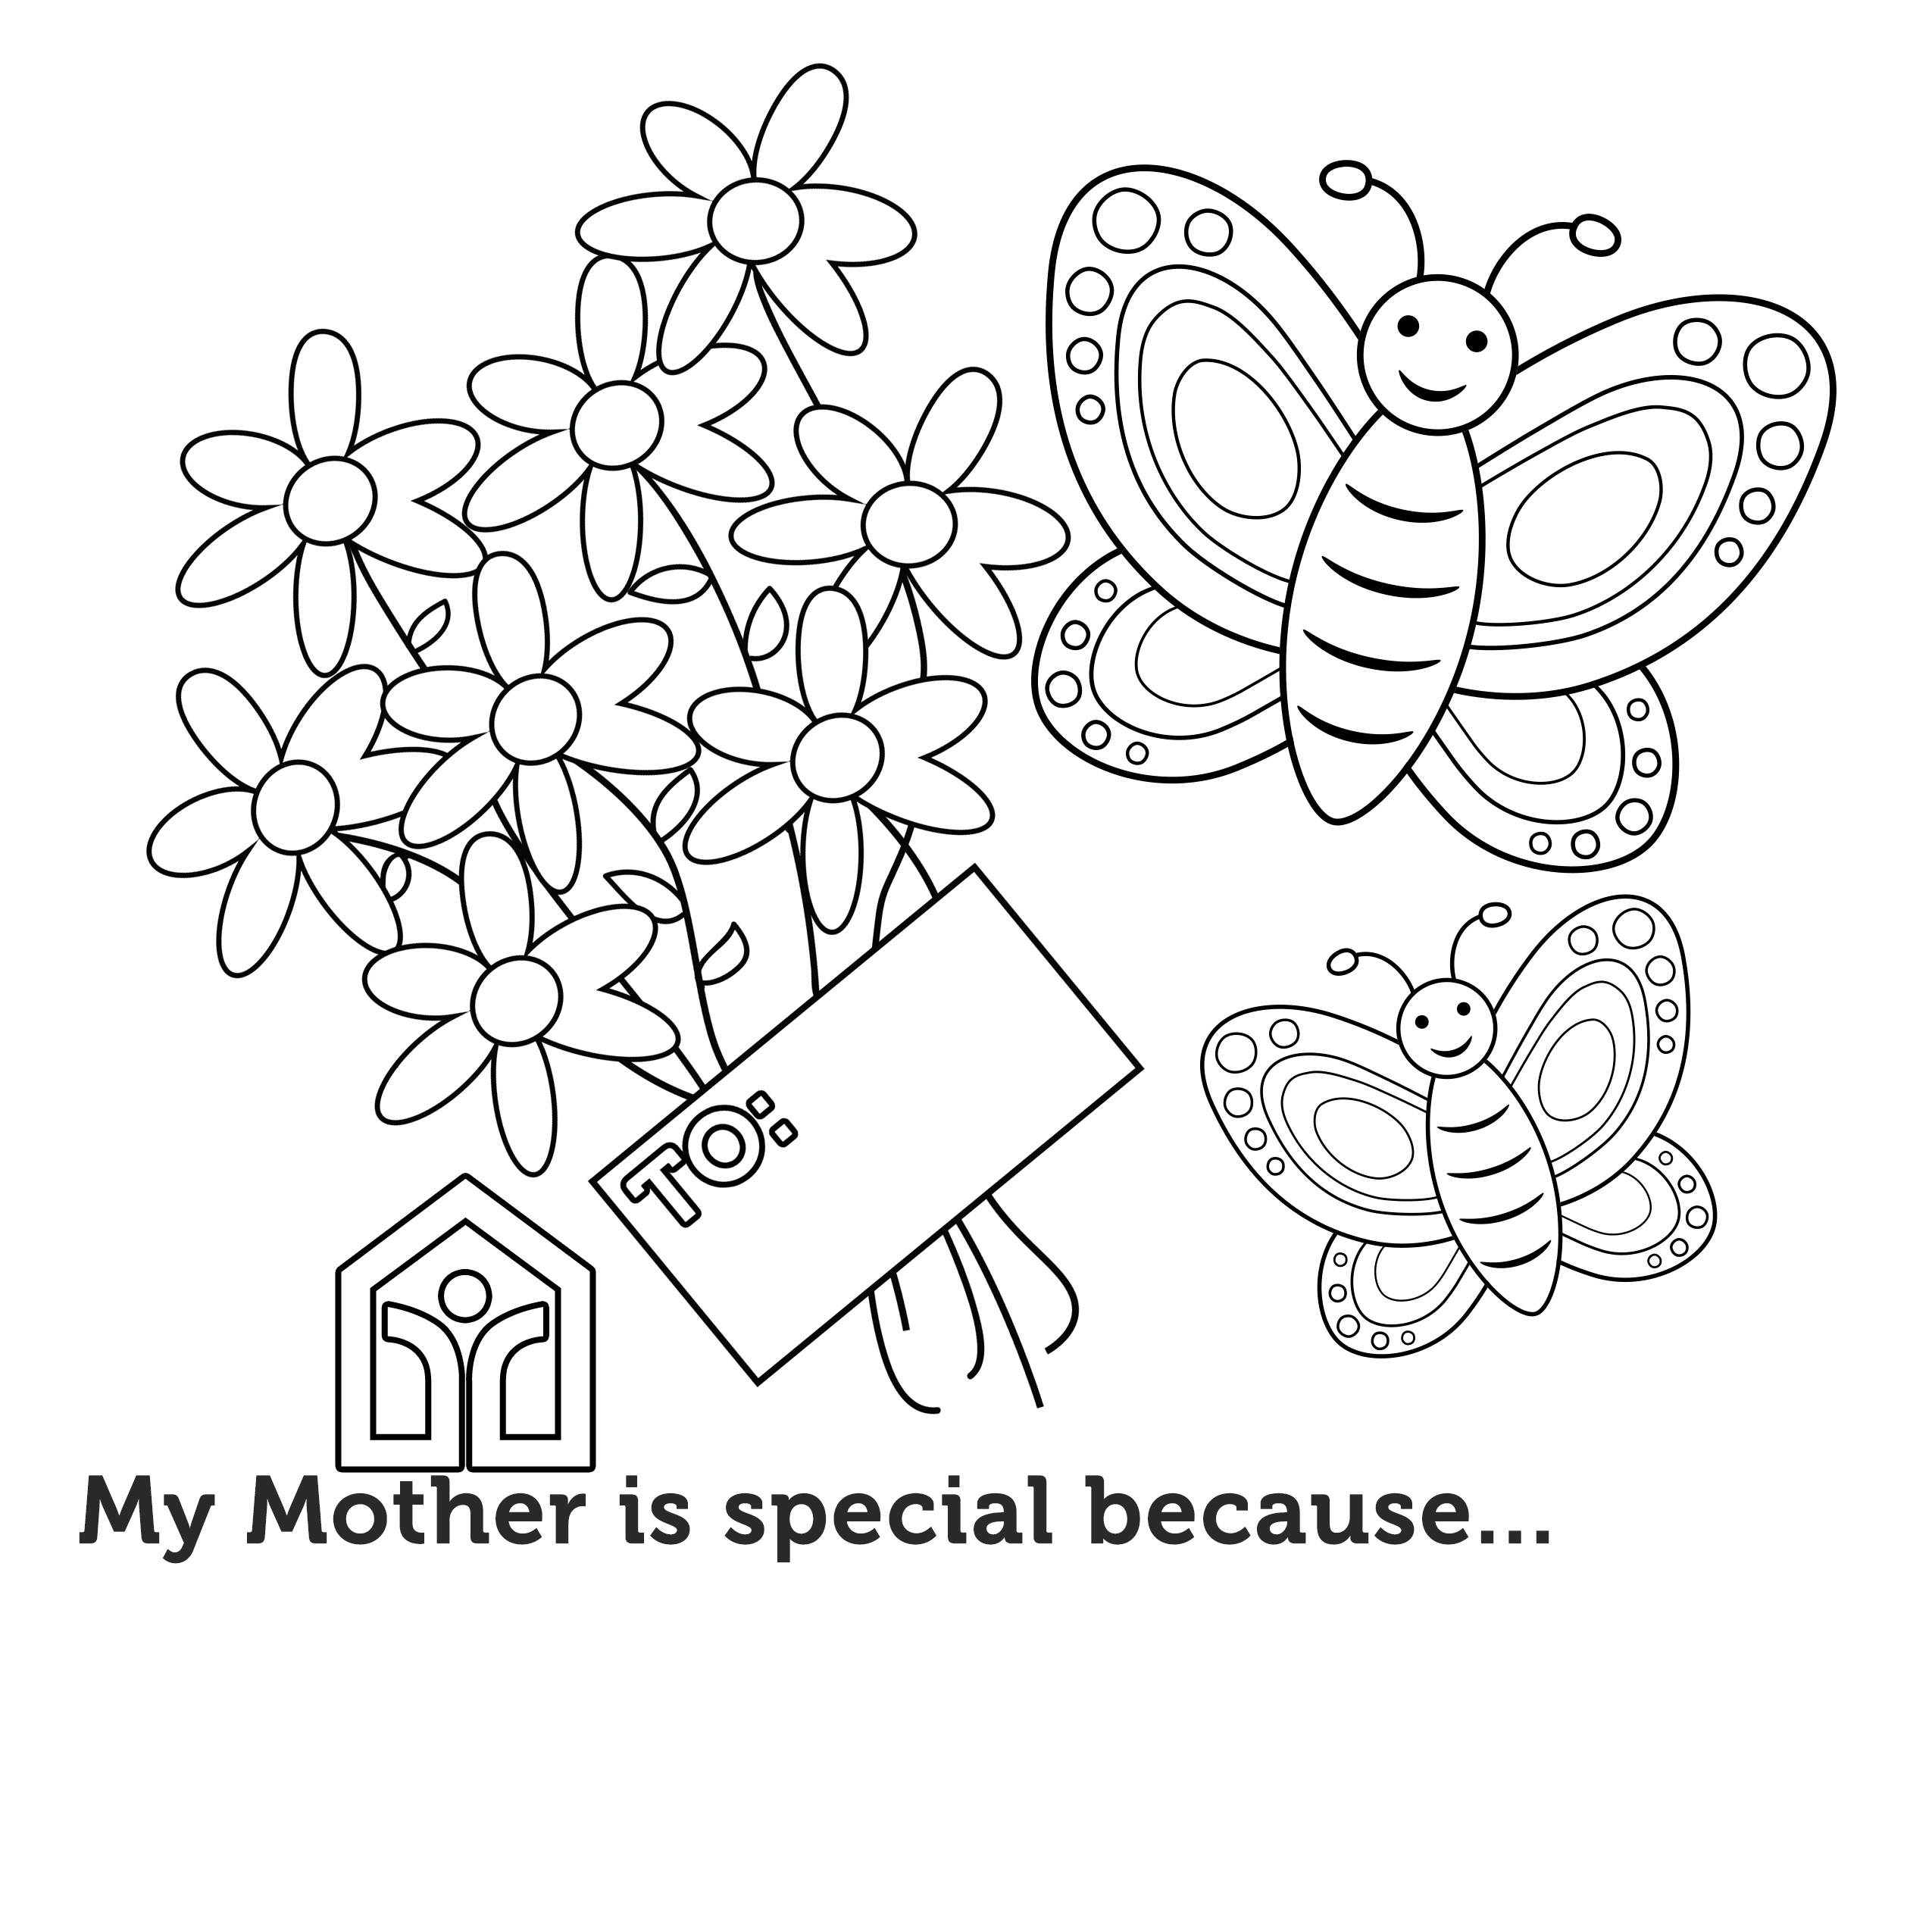 Mother's Day Coloring Contest – MOTHER